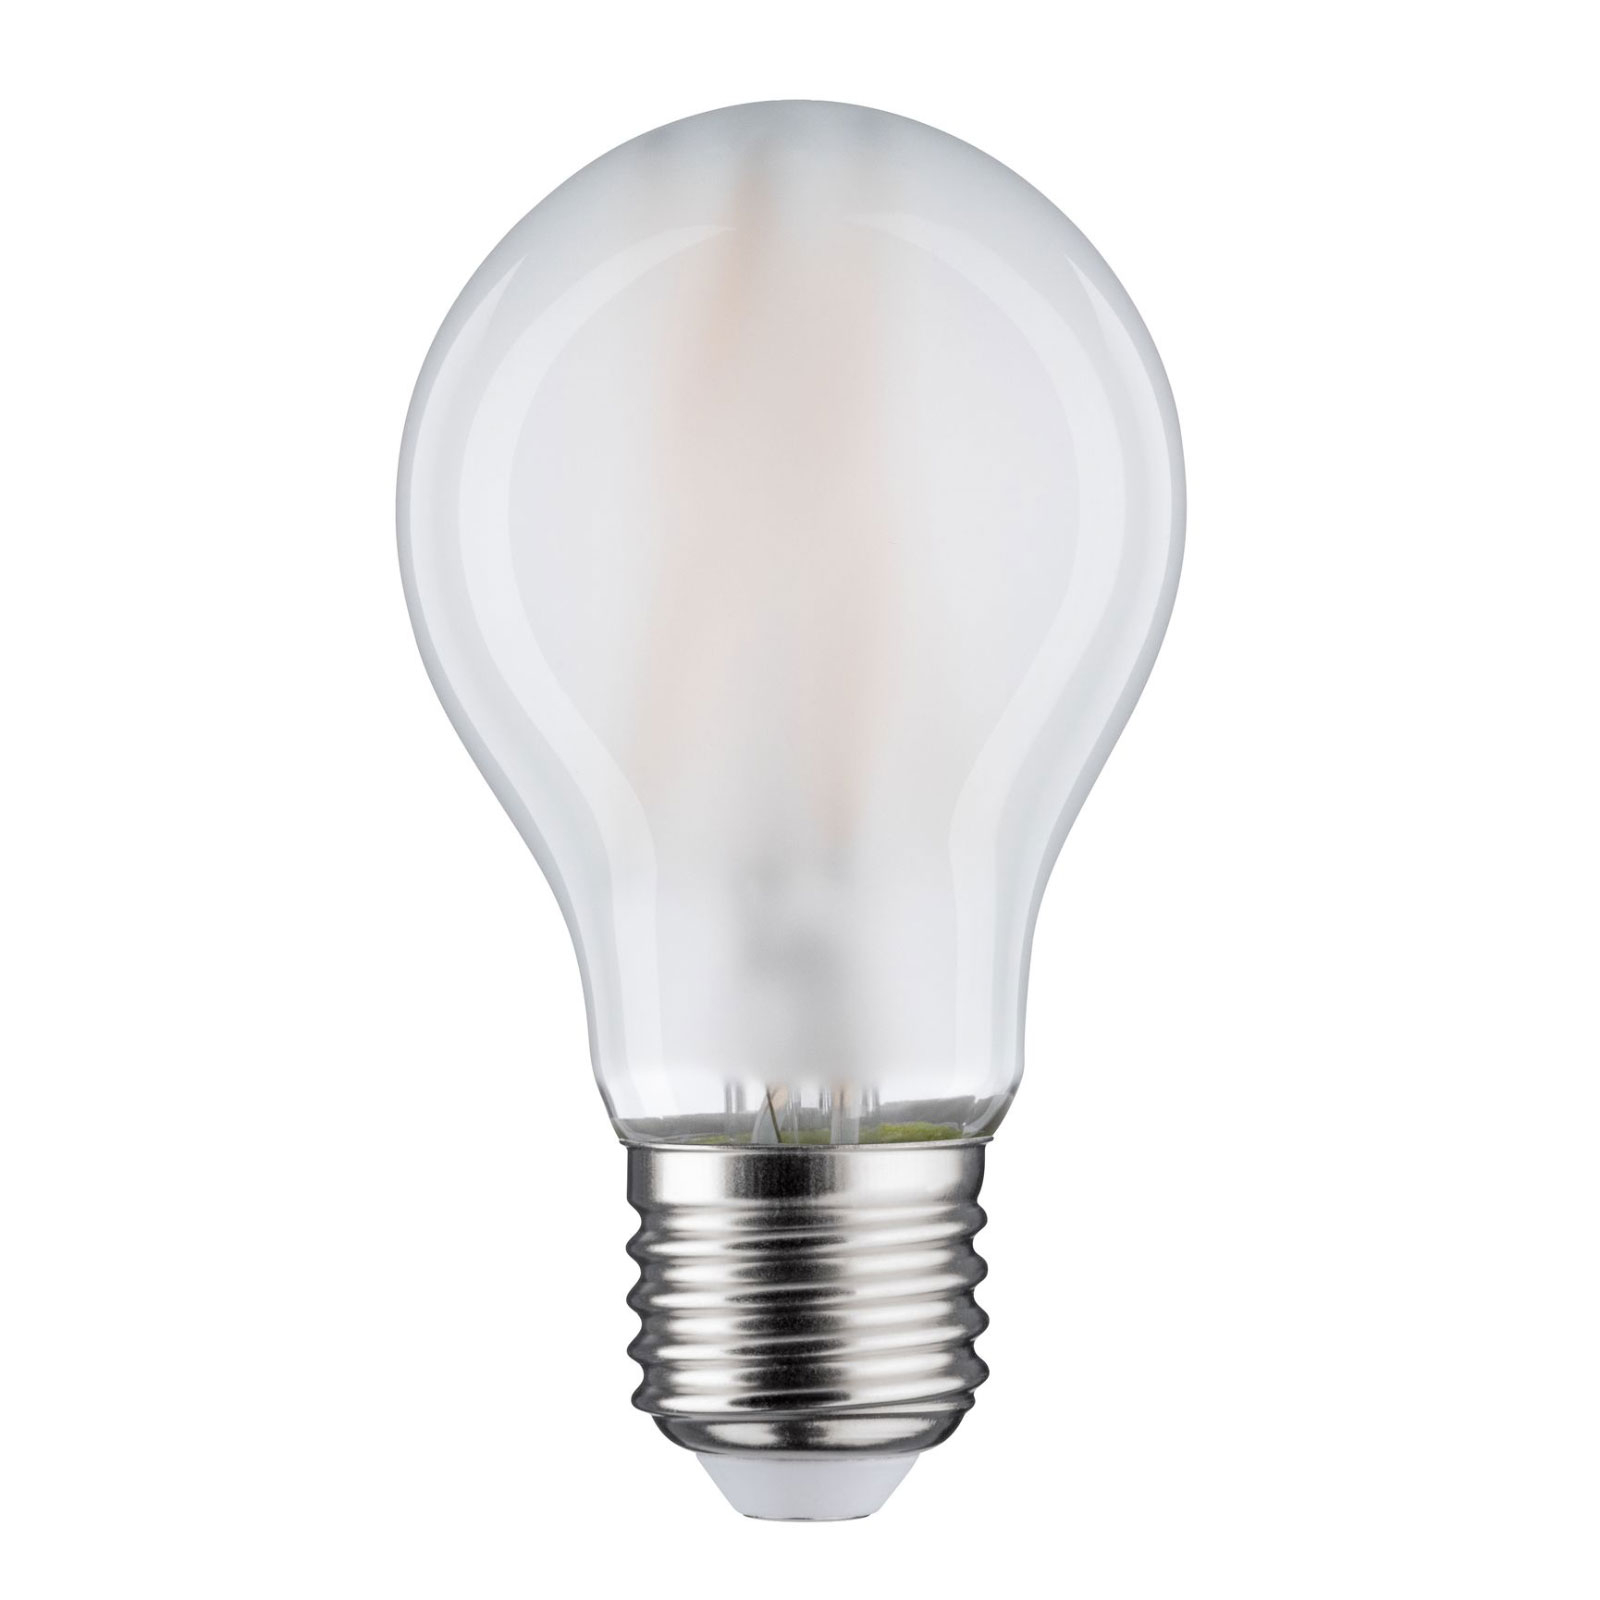 LED-Lampe E27 A60 7,5W 840 matt dimmbar